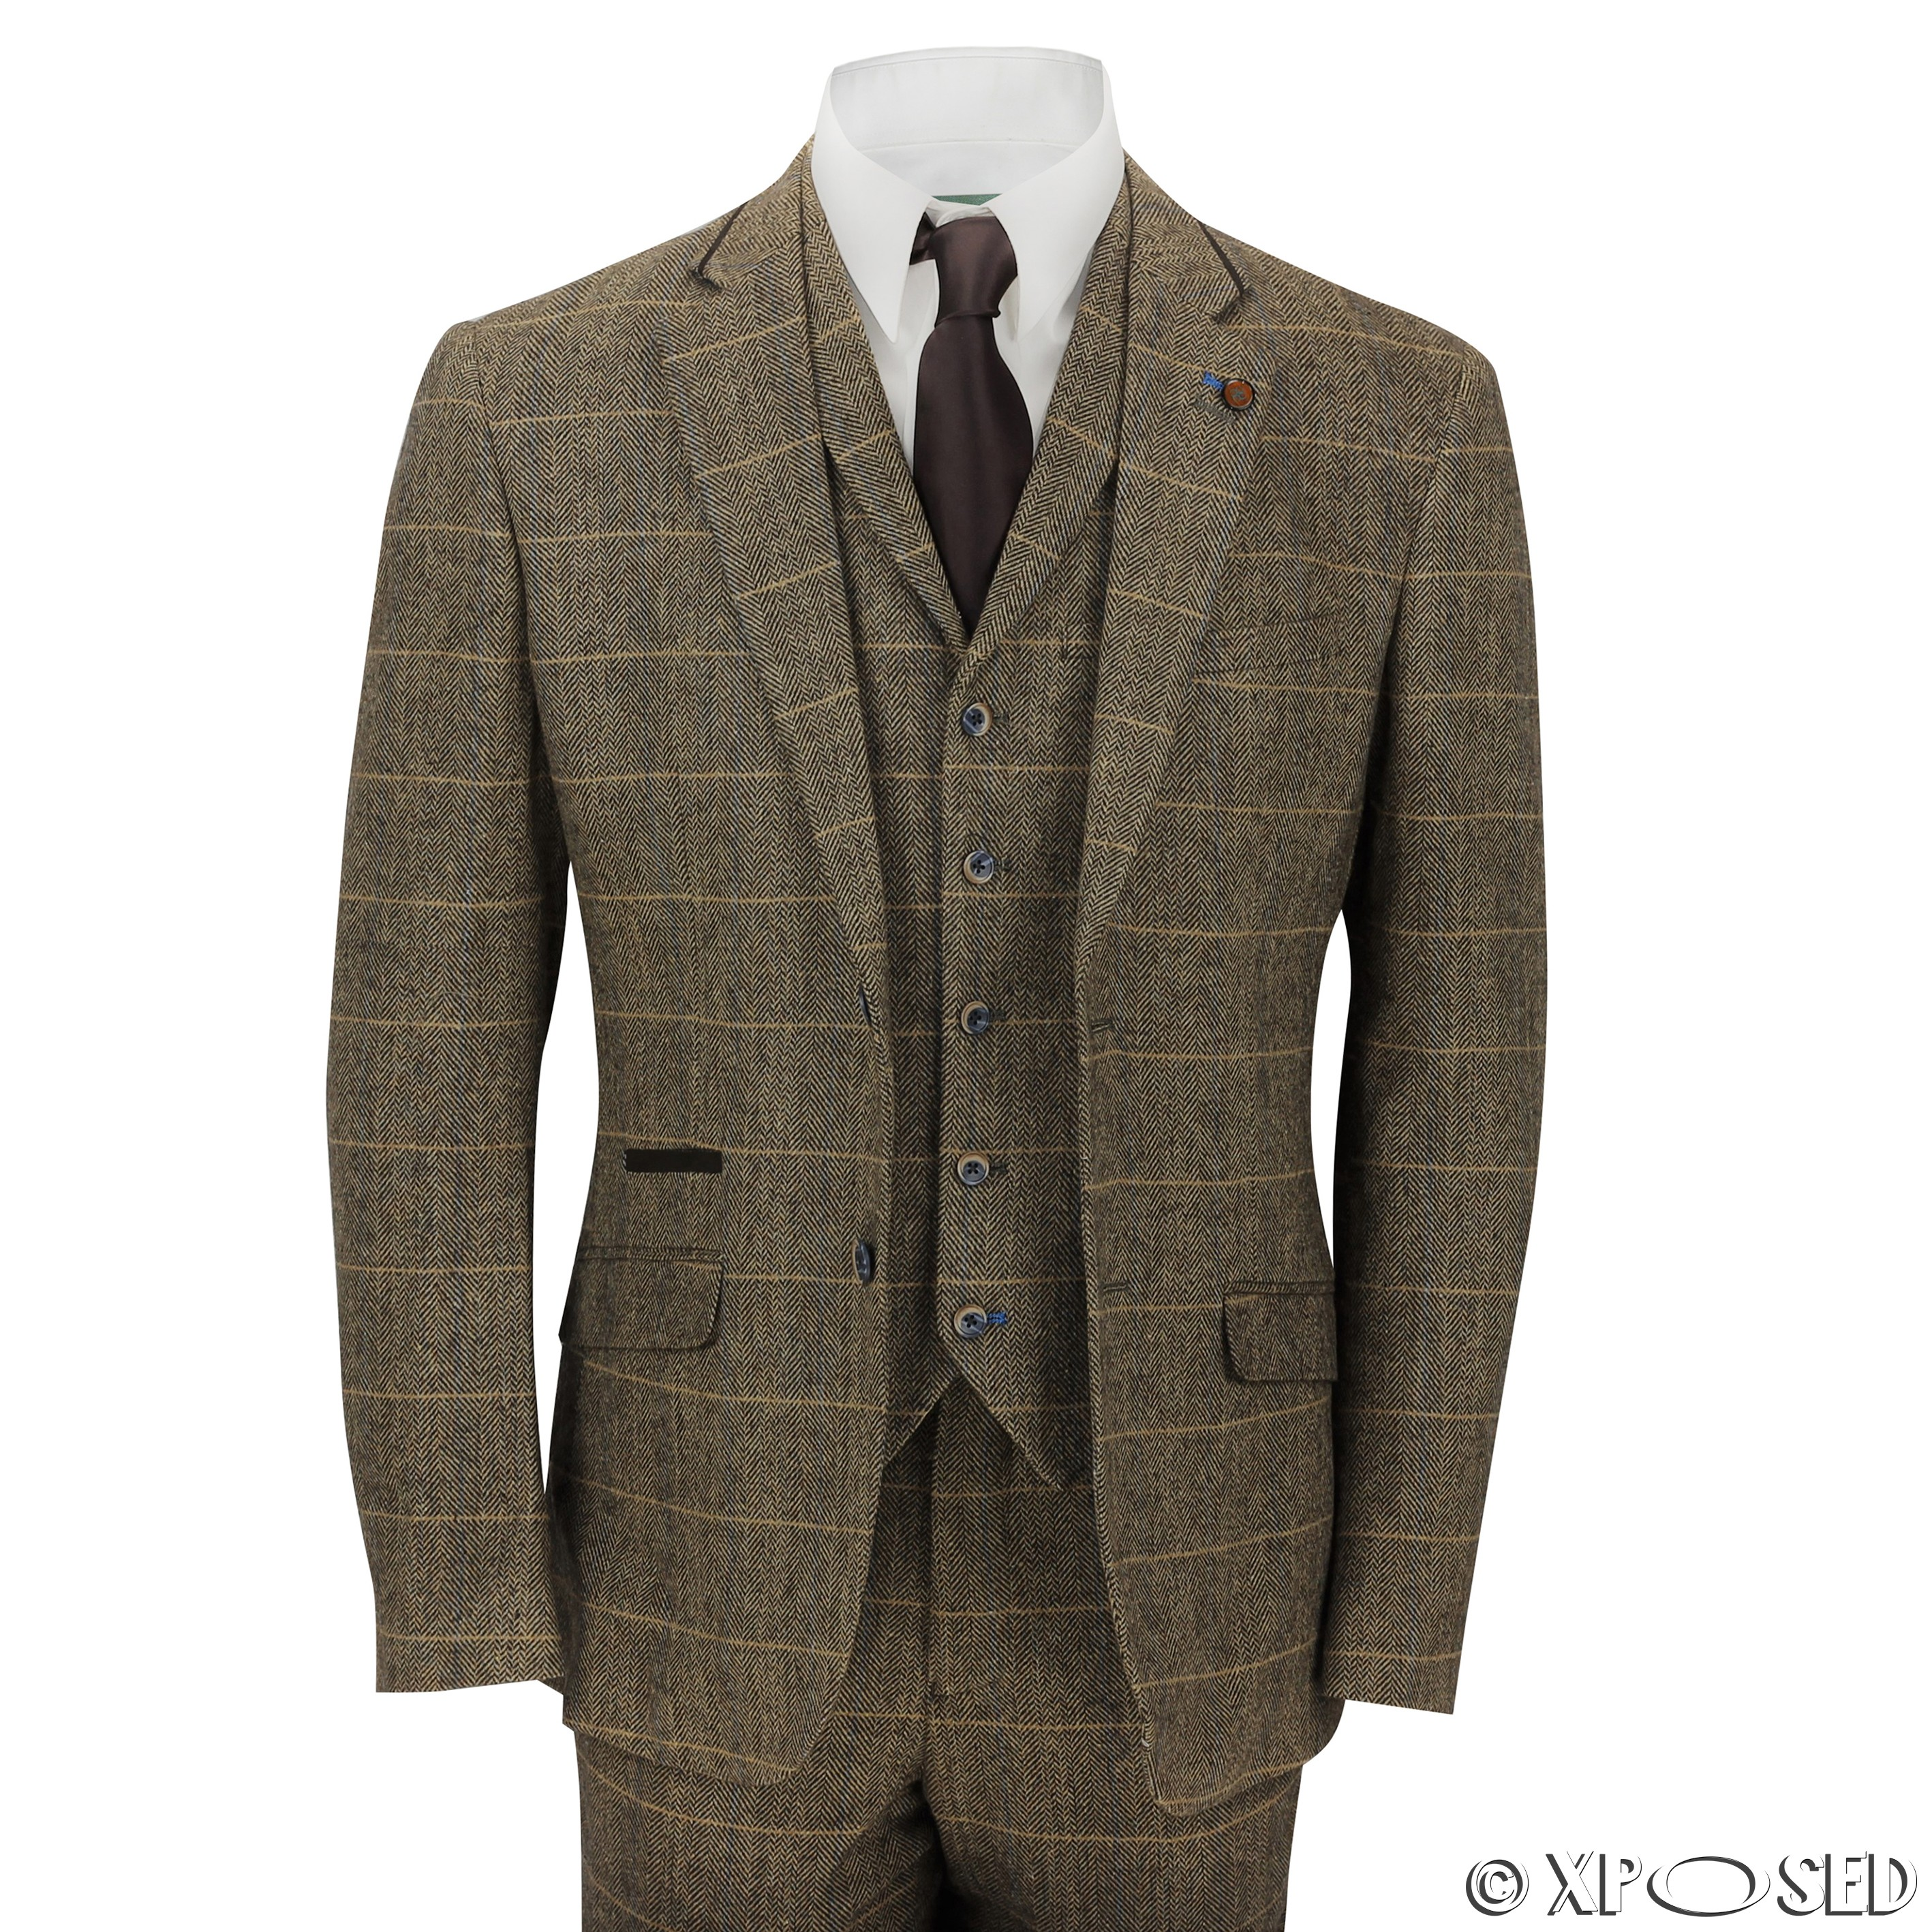 A Custom Mens Tweed Suit is both timeless and classic. It will never go out of style and it is a worthy addition to your wardrobe. It will never go out of style and it is a worthy addition to your wardrobe.